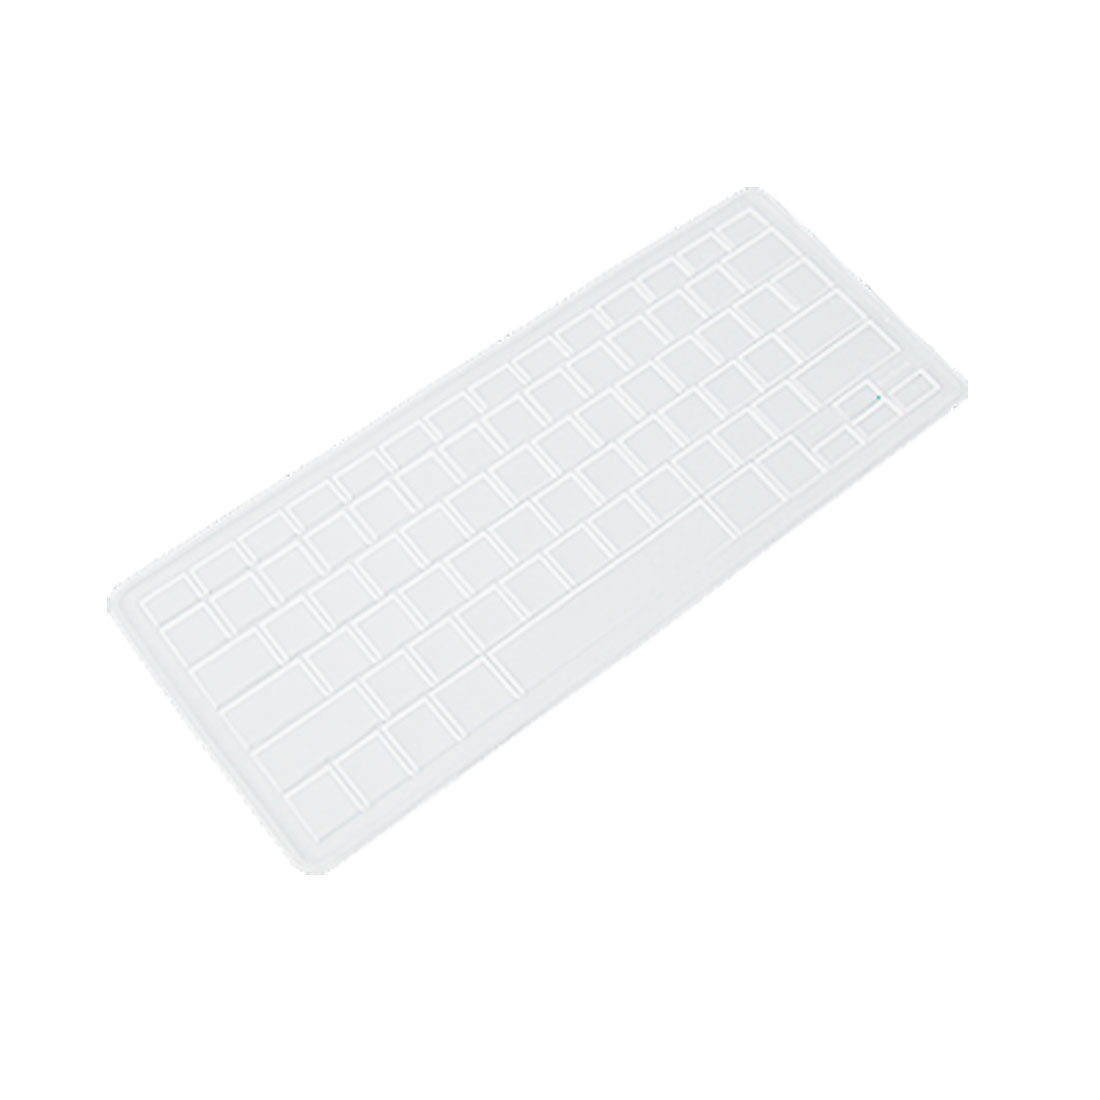 "Keyboard Silicon Skin Cover for Apple MacBook Pro 13.3"" US"